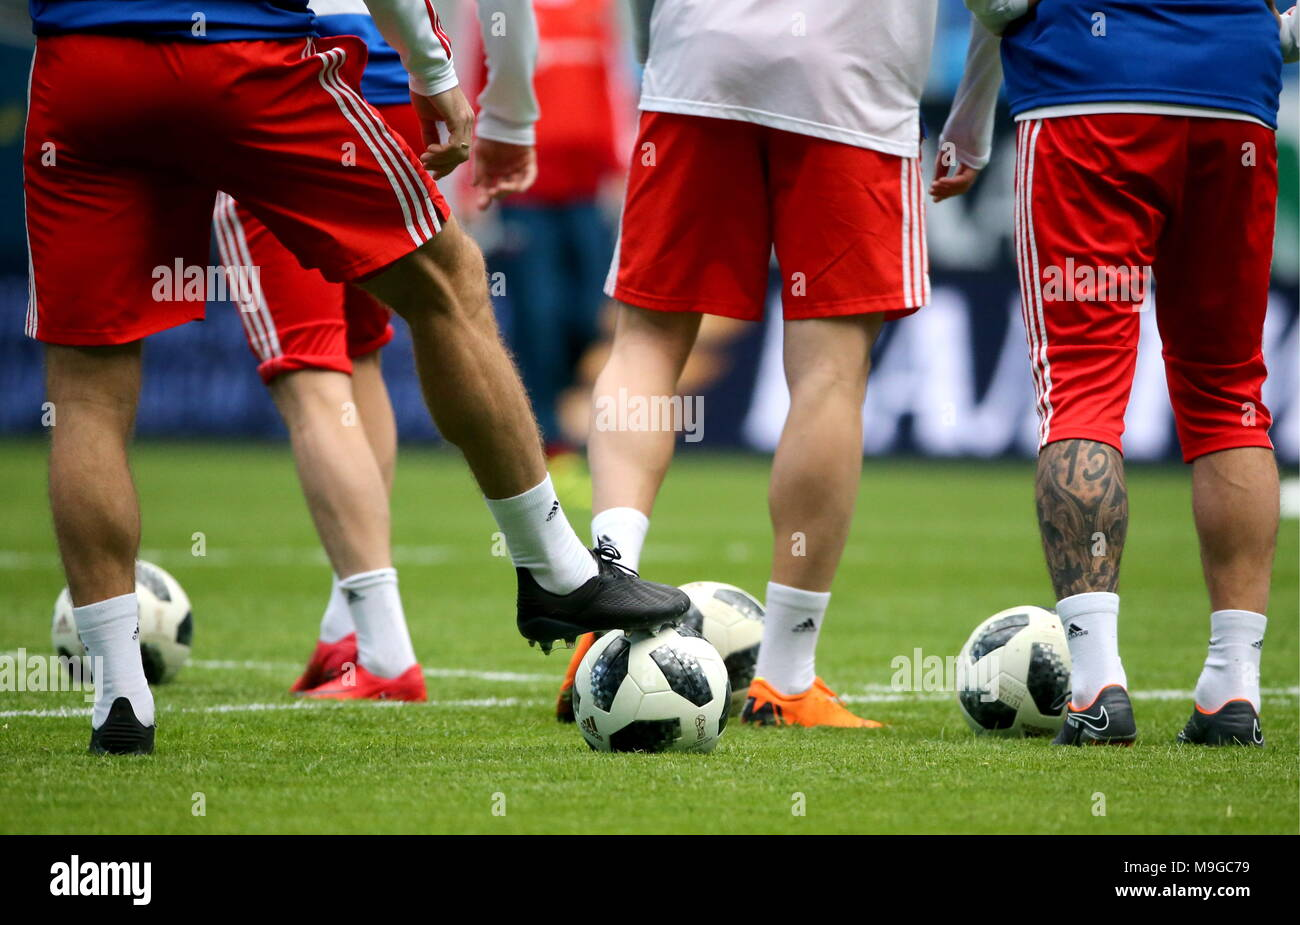 St Petersburg, Russia. 26th Mar, 2018. ST PETERSBURG, RUSSIA - MARCH 26, 2018: Members of the Russian men's national football team training for a friendly match against France at Saint Petersburg Stadium. Alexander Demianchuk/TASS Credit: ITAR-TASS News Agency/Alamy Live News - Stock Image